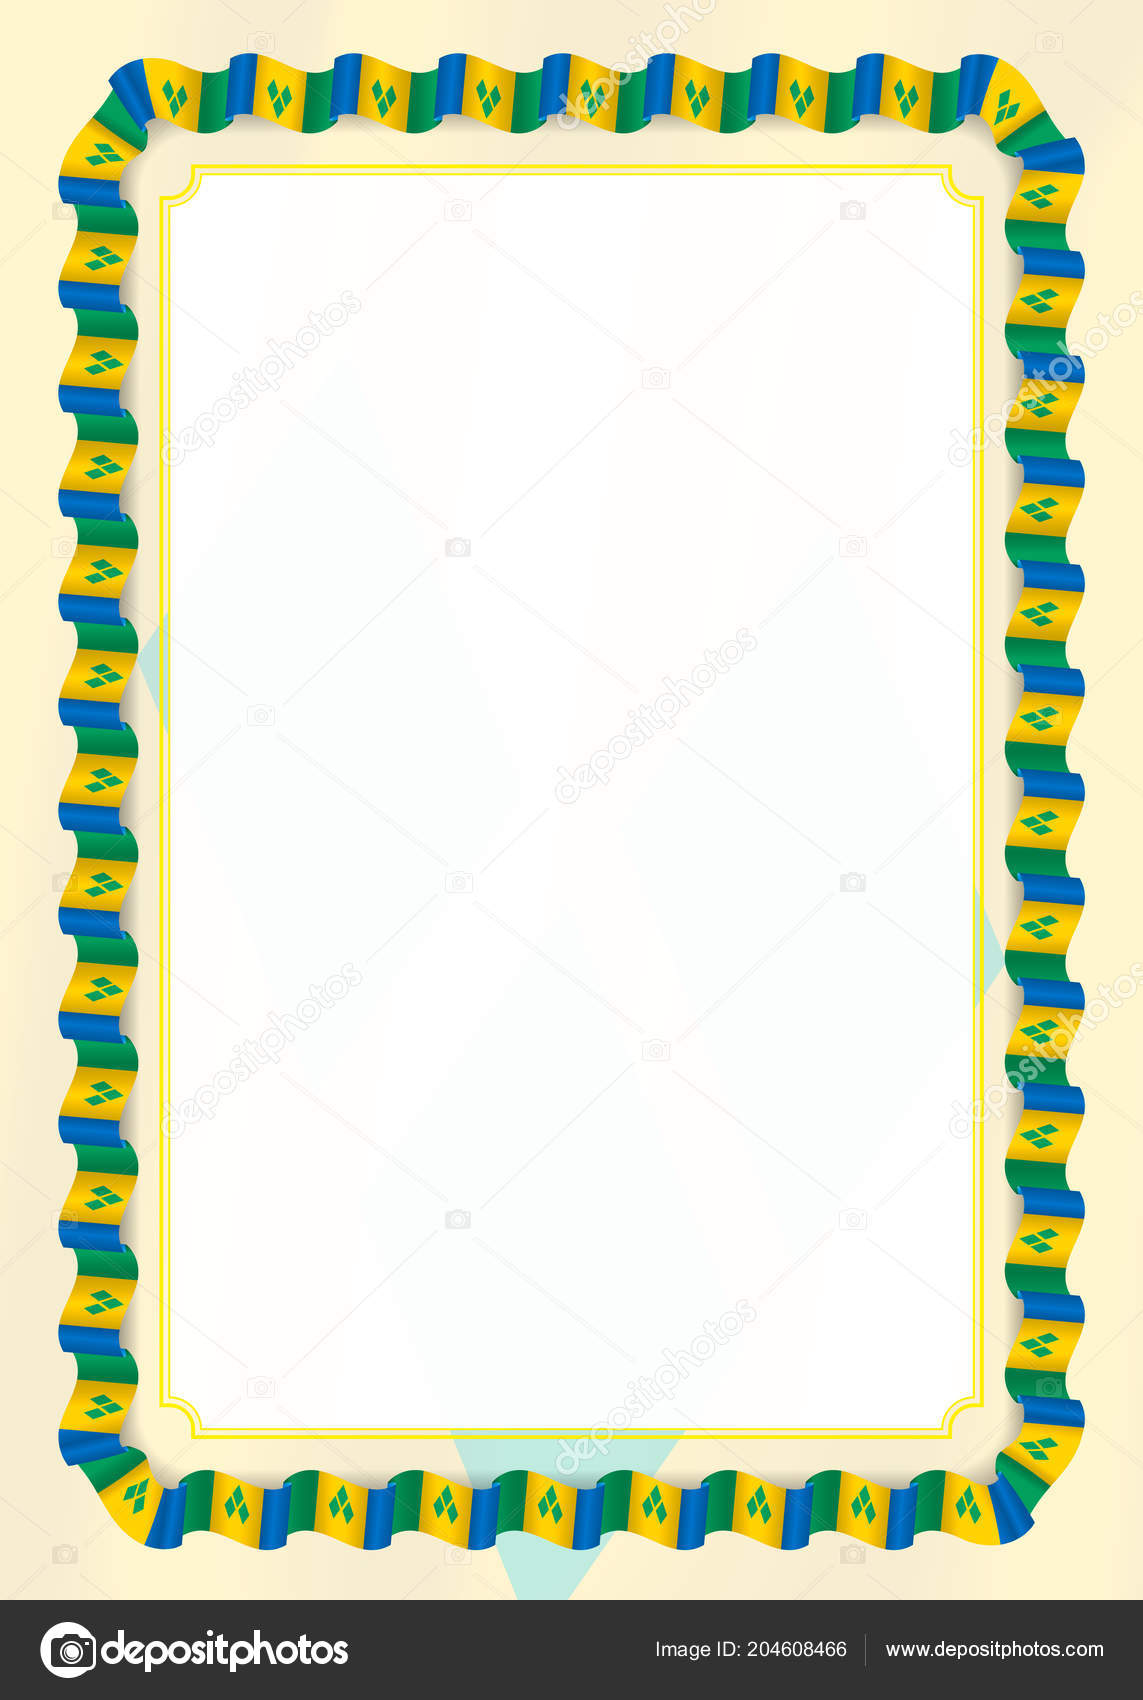 Frame Border Ribbon Saint Vincent Grenadines Flag Template Elements ...